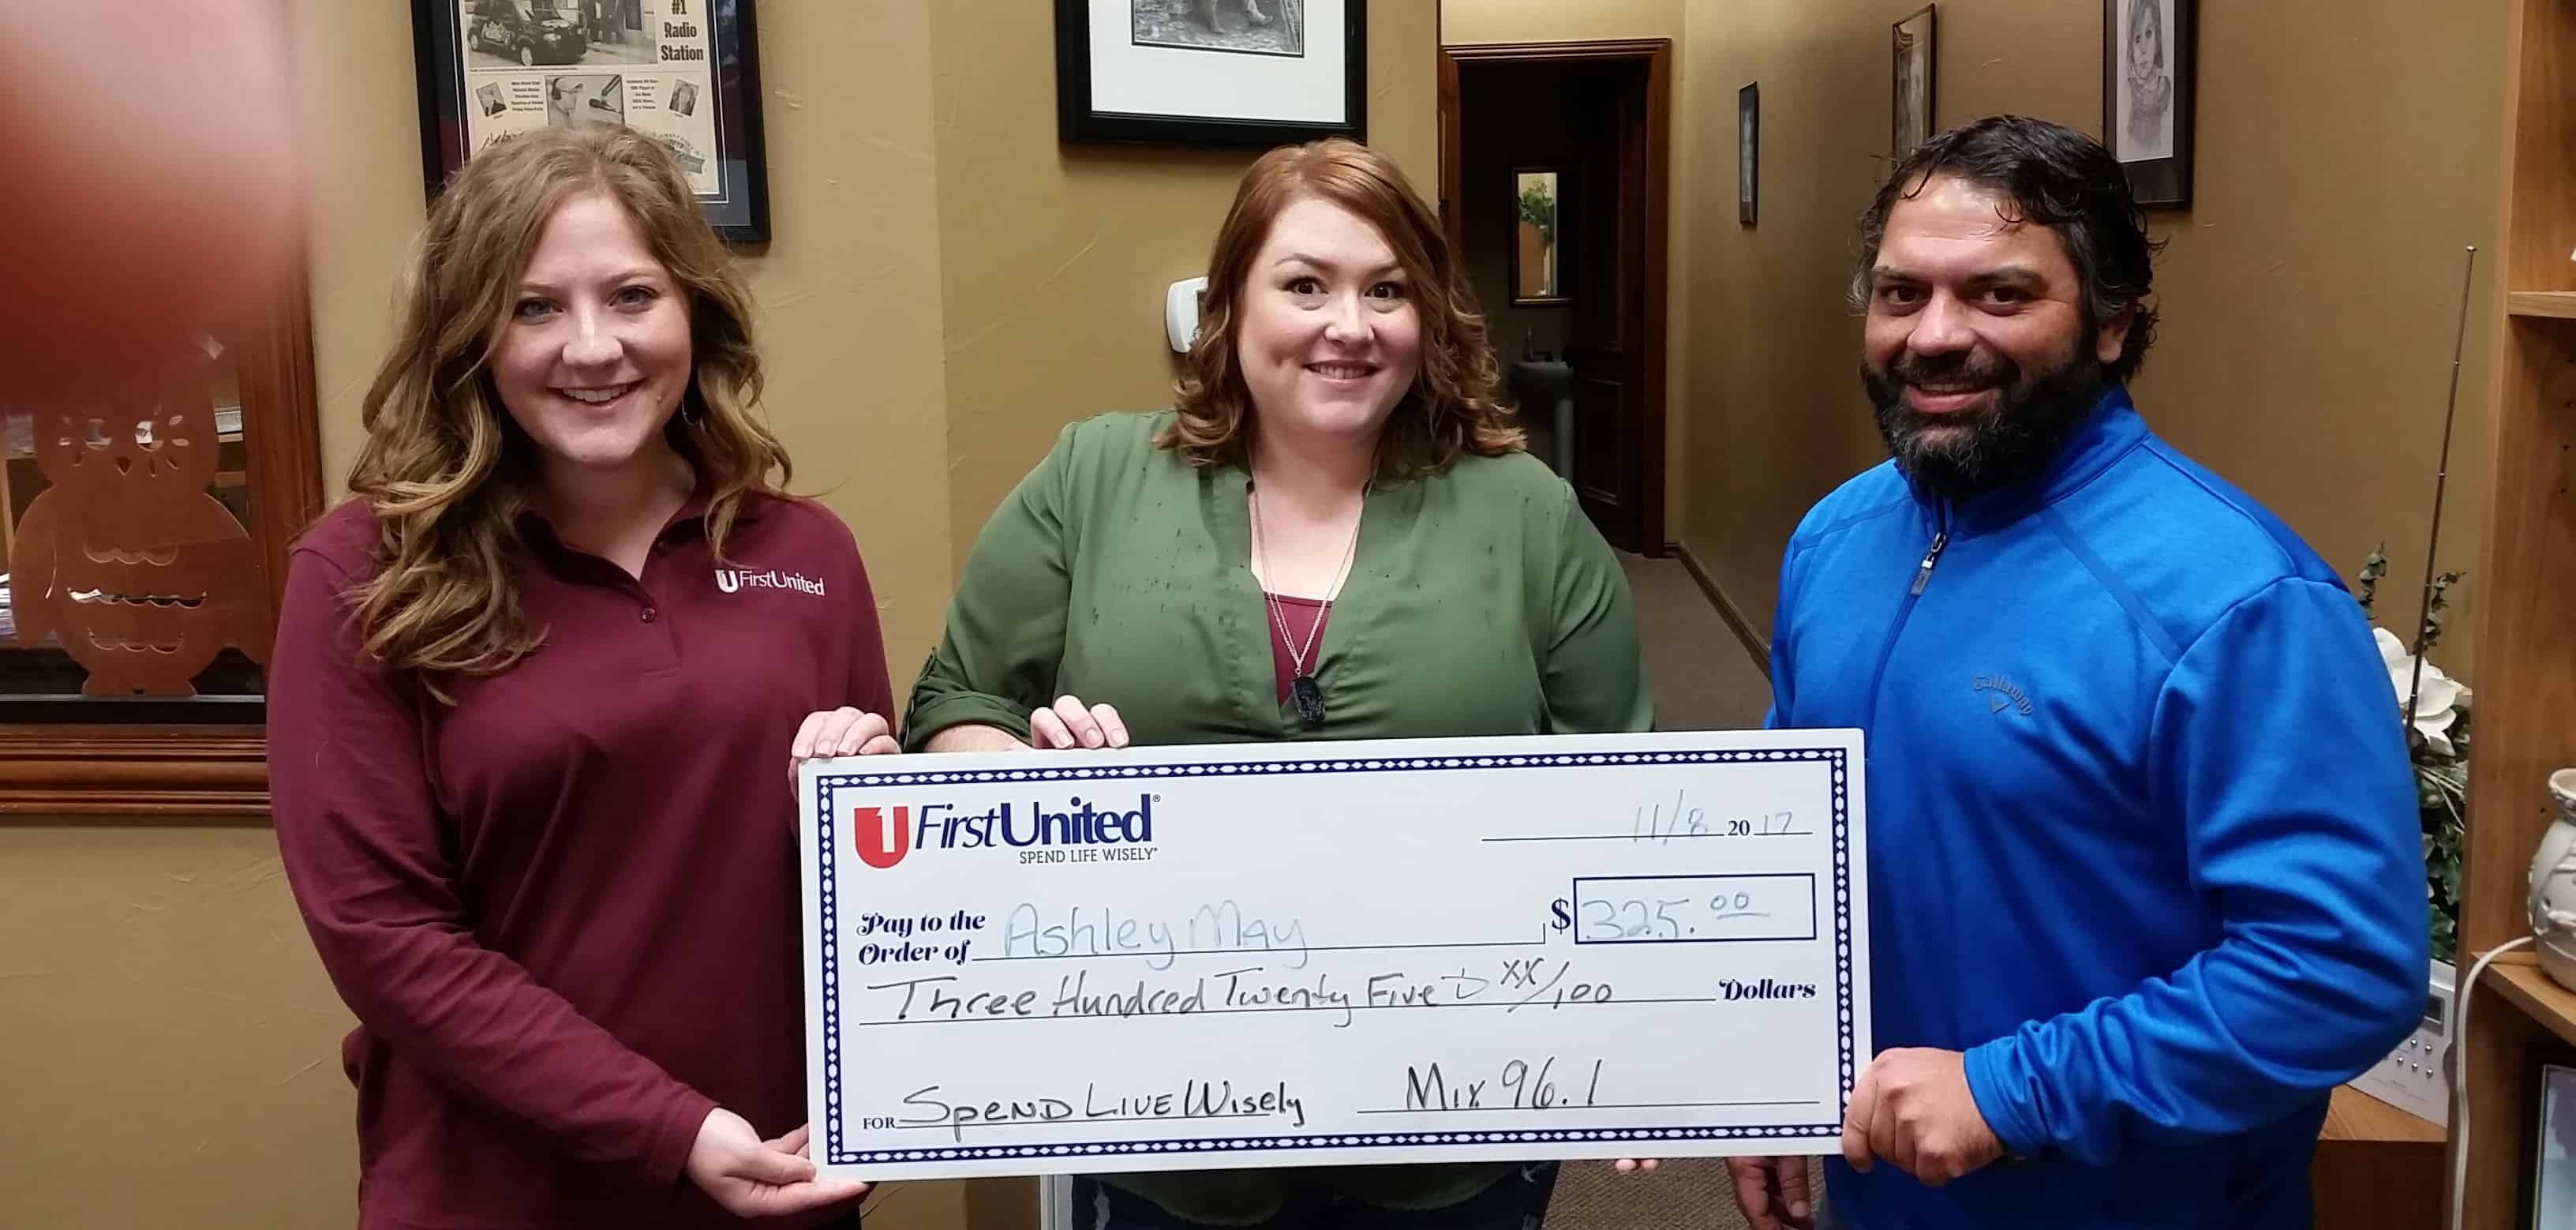 Ashley May won $325 in the Spend Life Wisely Contest